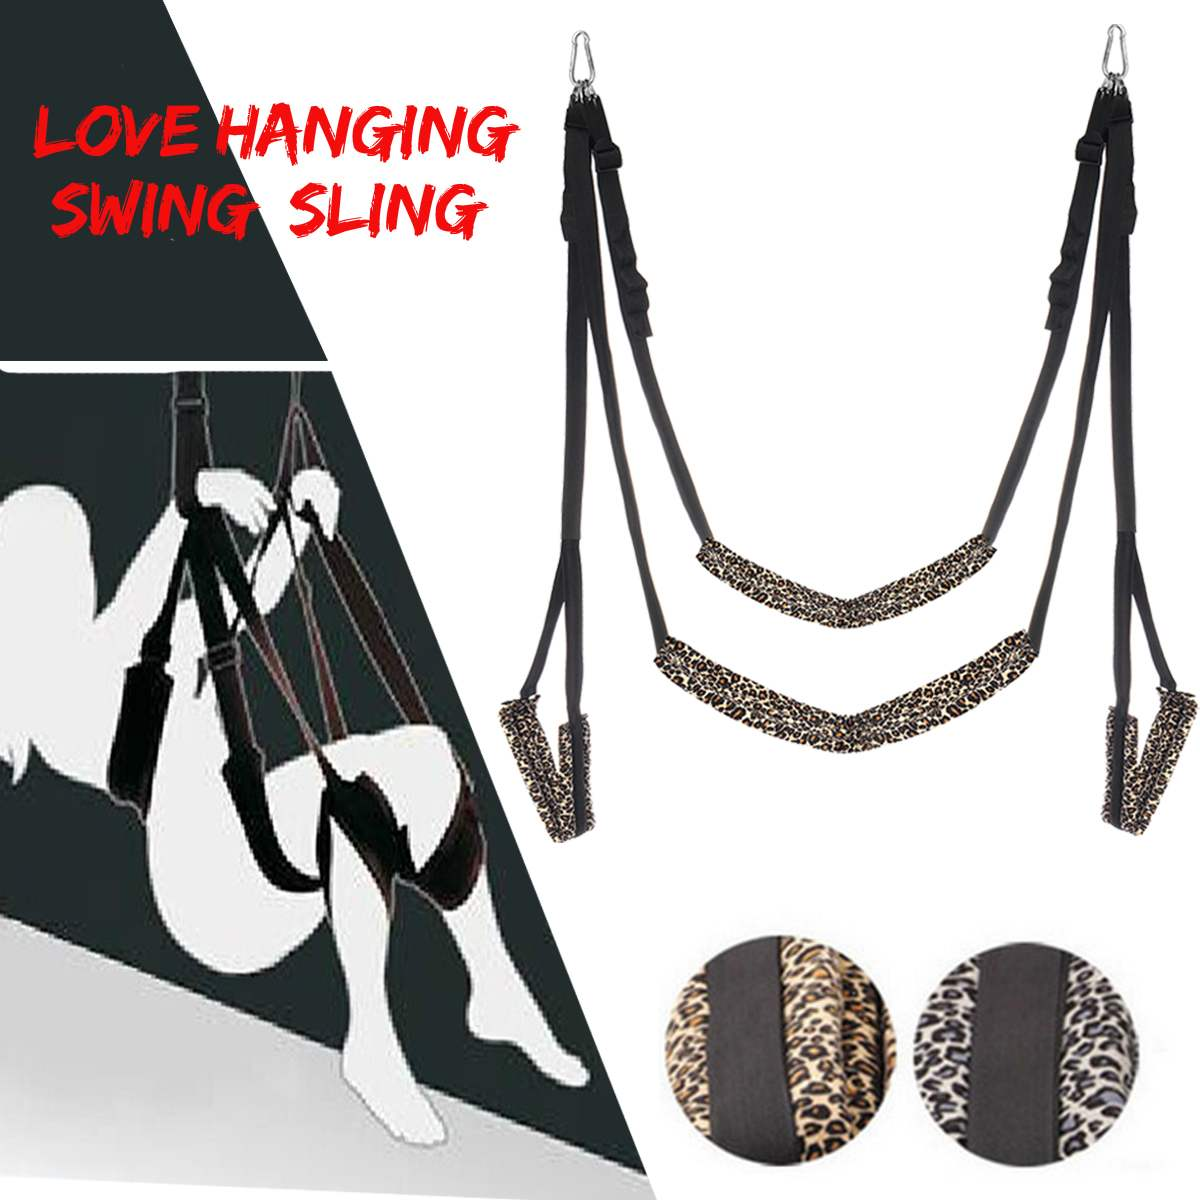 Meselo <font><b>Adult</b></font> <font><b>Sex</b></font> Bdsm Toys Leopard Love <font><b>Sex</b></font> Products Chair Strap Door Hanging <font><b>Swing</b></font> Sling Couple Game Fantasy Couple Fun Toy Set image